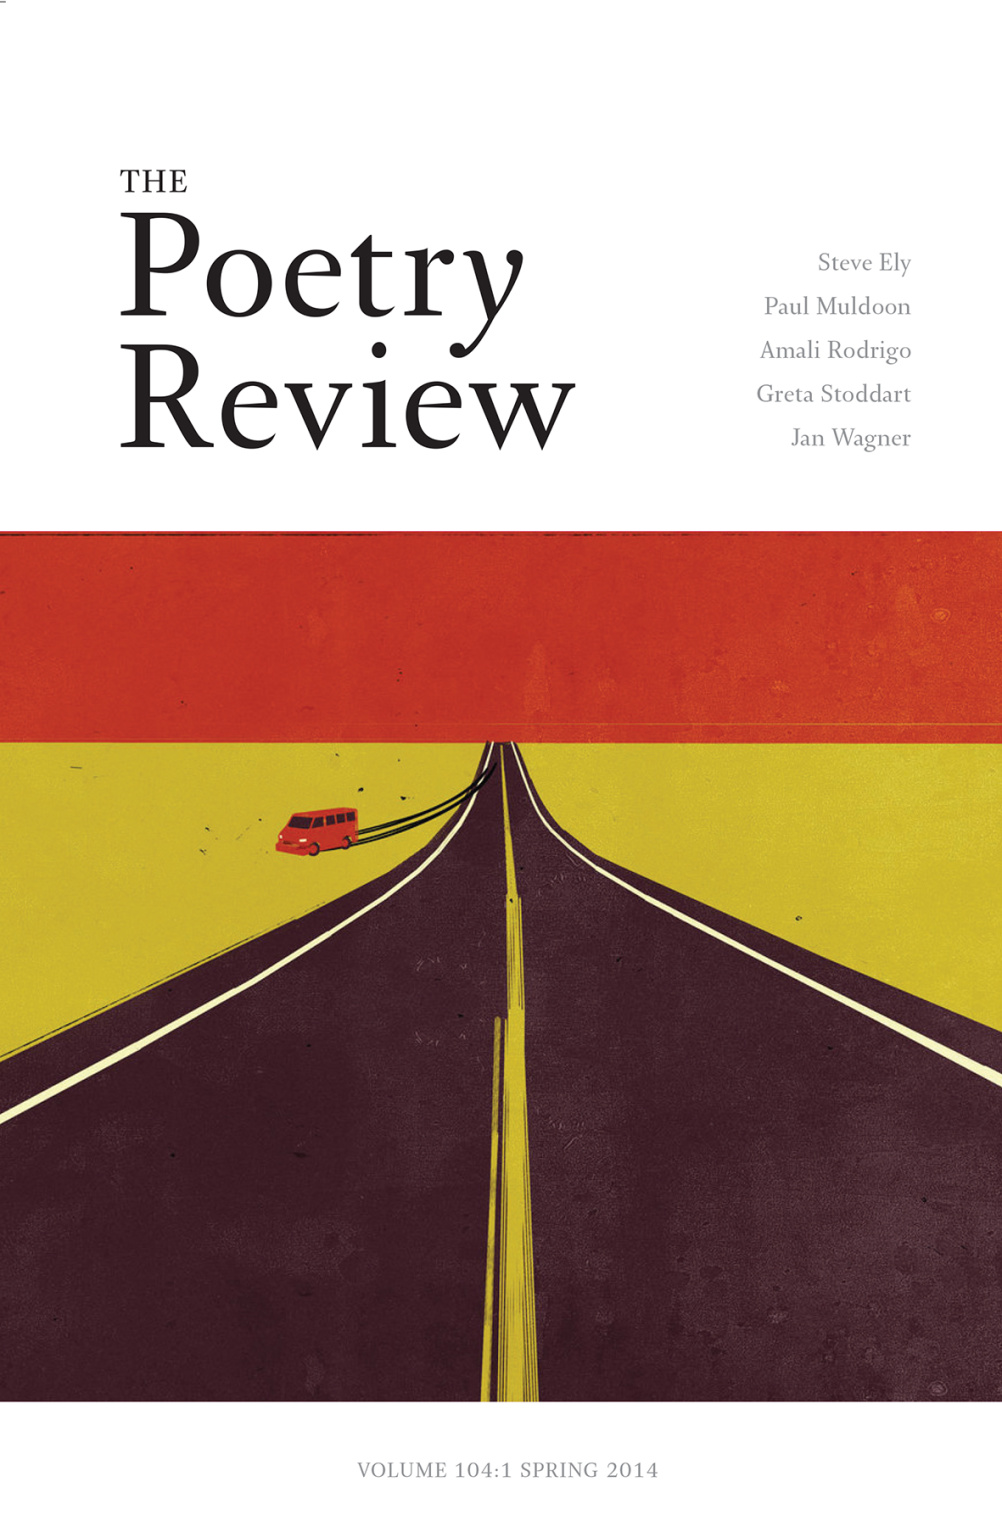 Cover, featuring an illustration by Shout